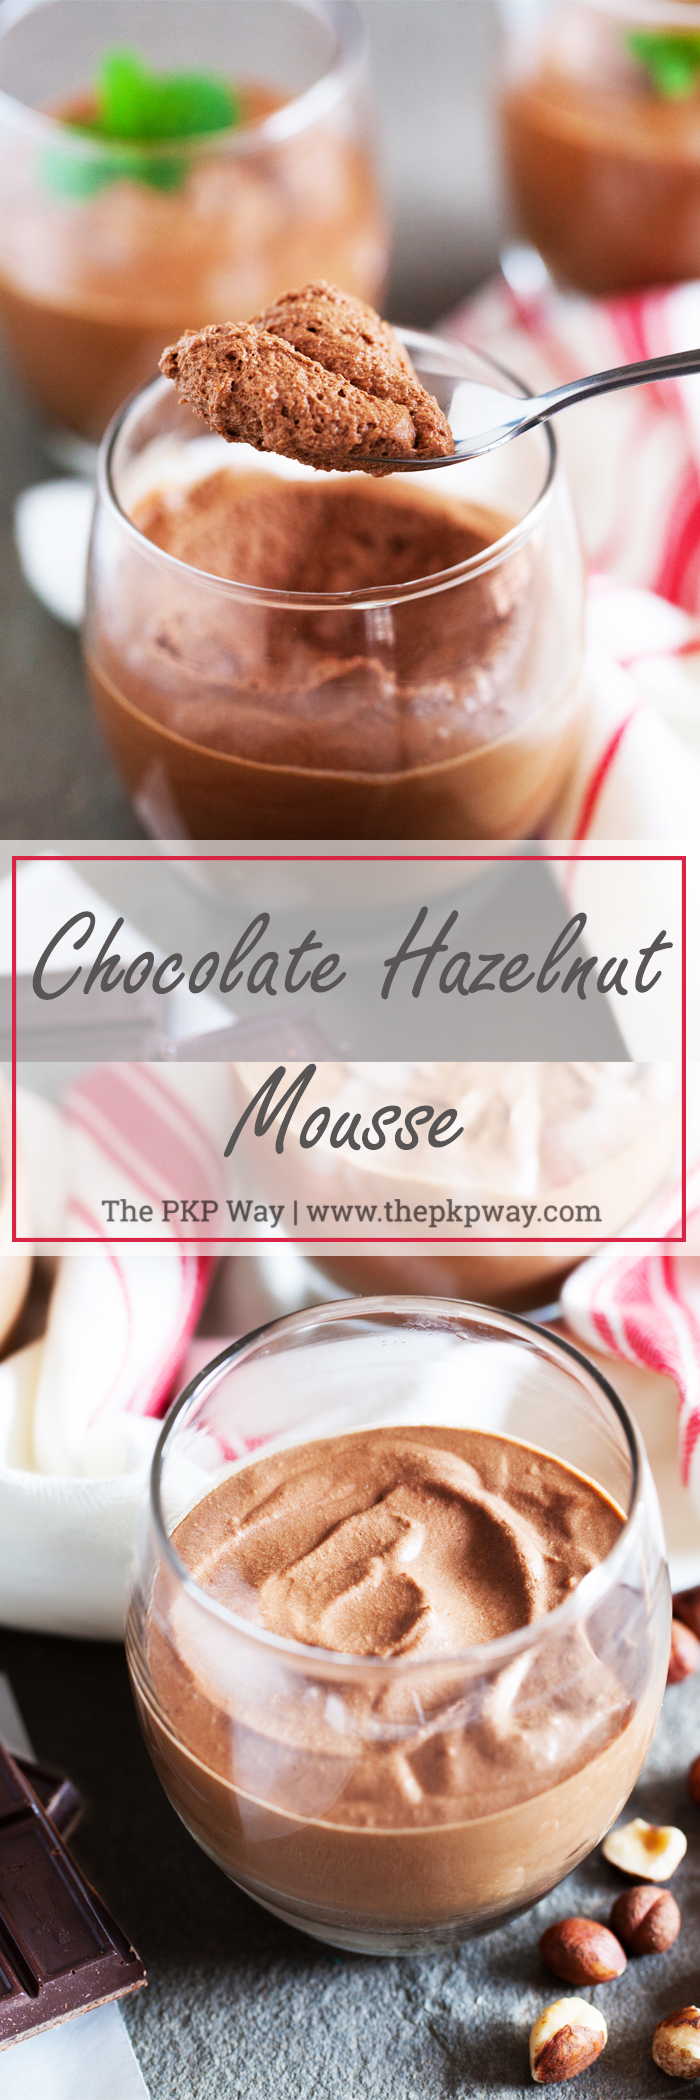 Cloud-like, melt in your mouth Chocolate Hazelnut Mousse – The perfect ending to any meal.